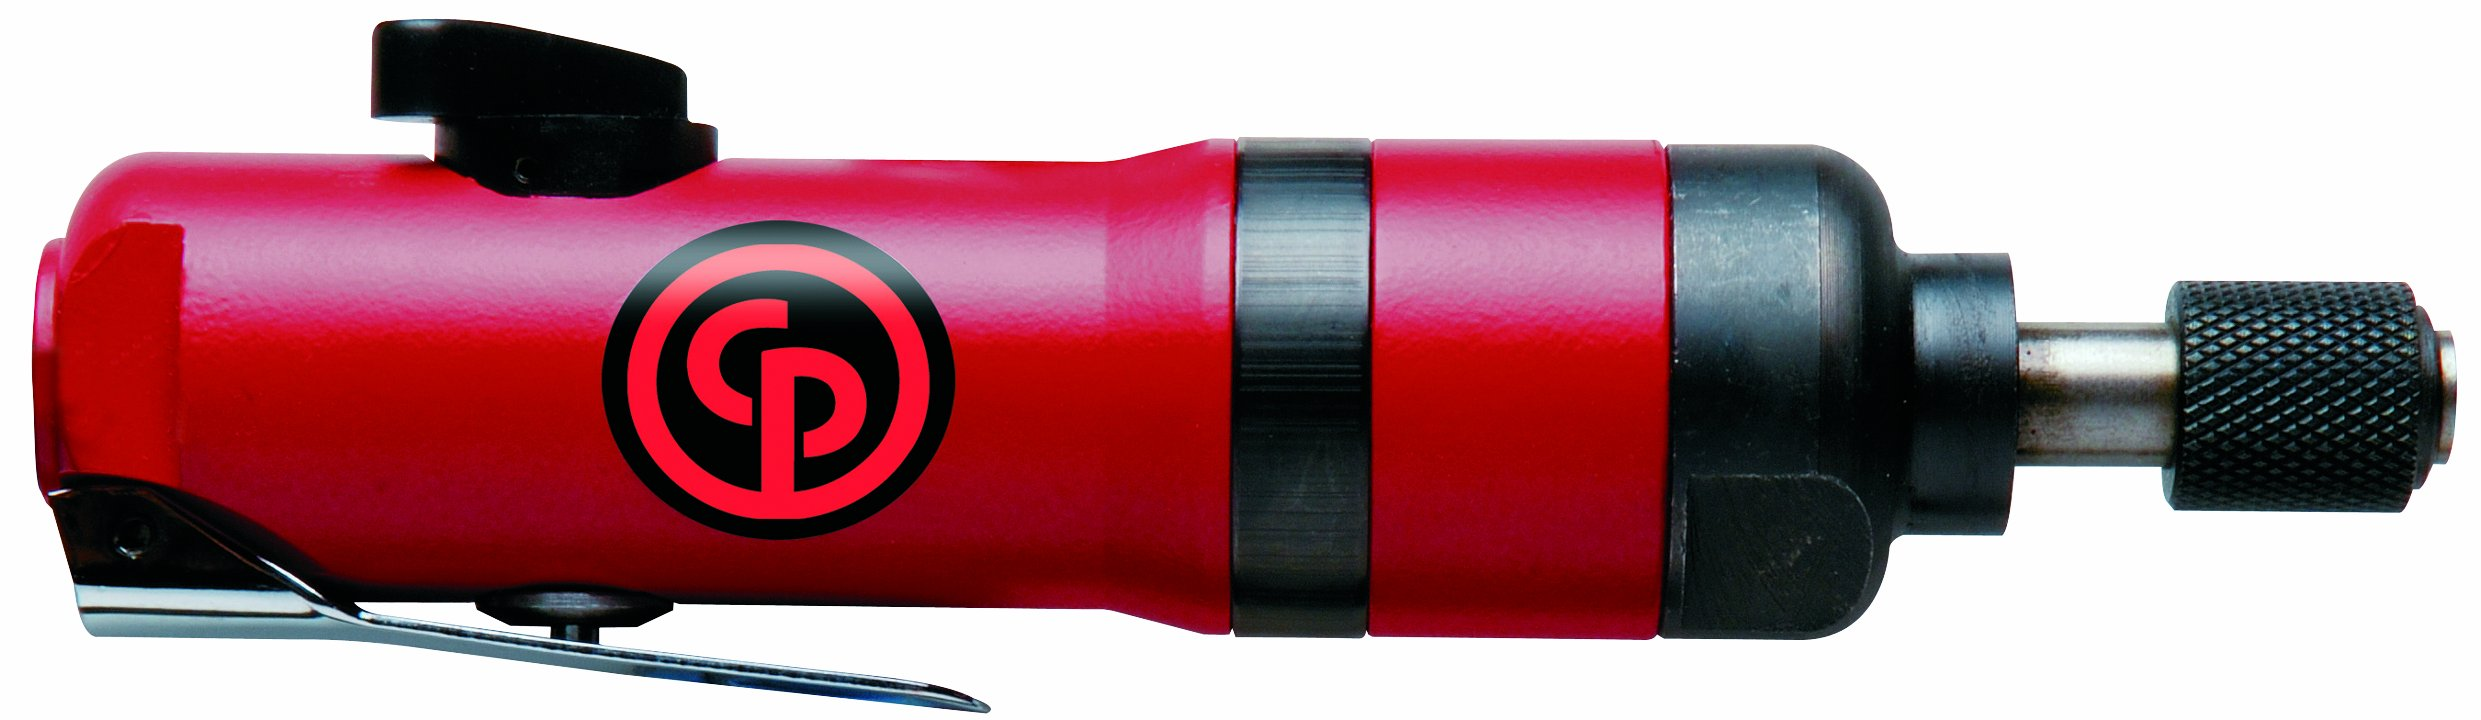 Chicago Pneumatic CP2036 Low Torque Straight Impact Screwdriver with Quick Change Chuck